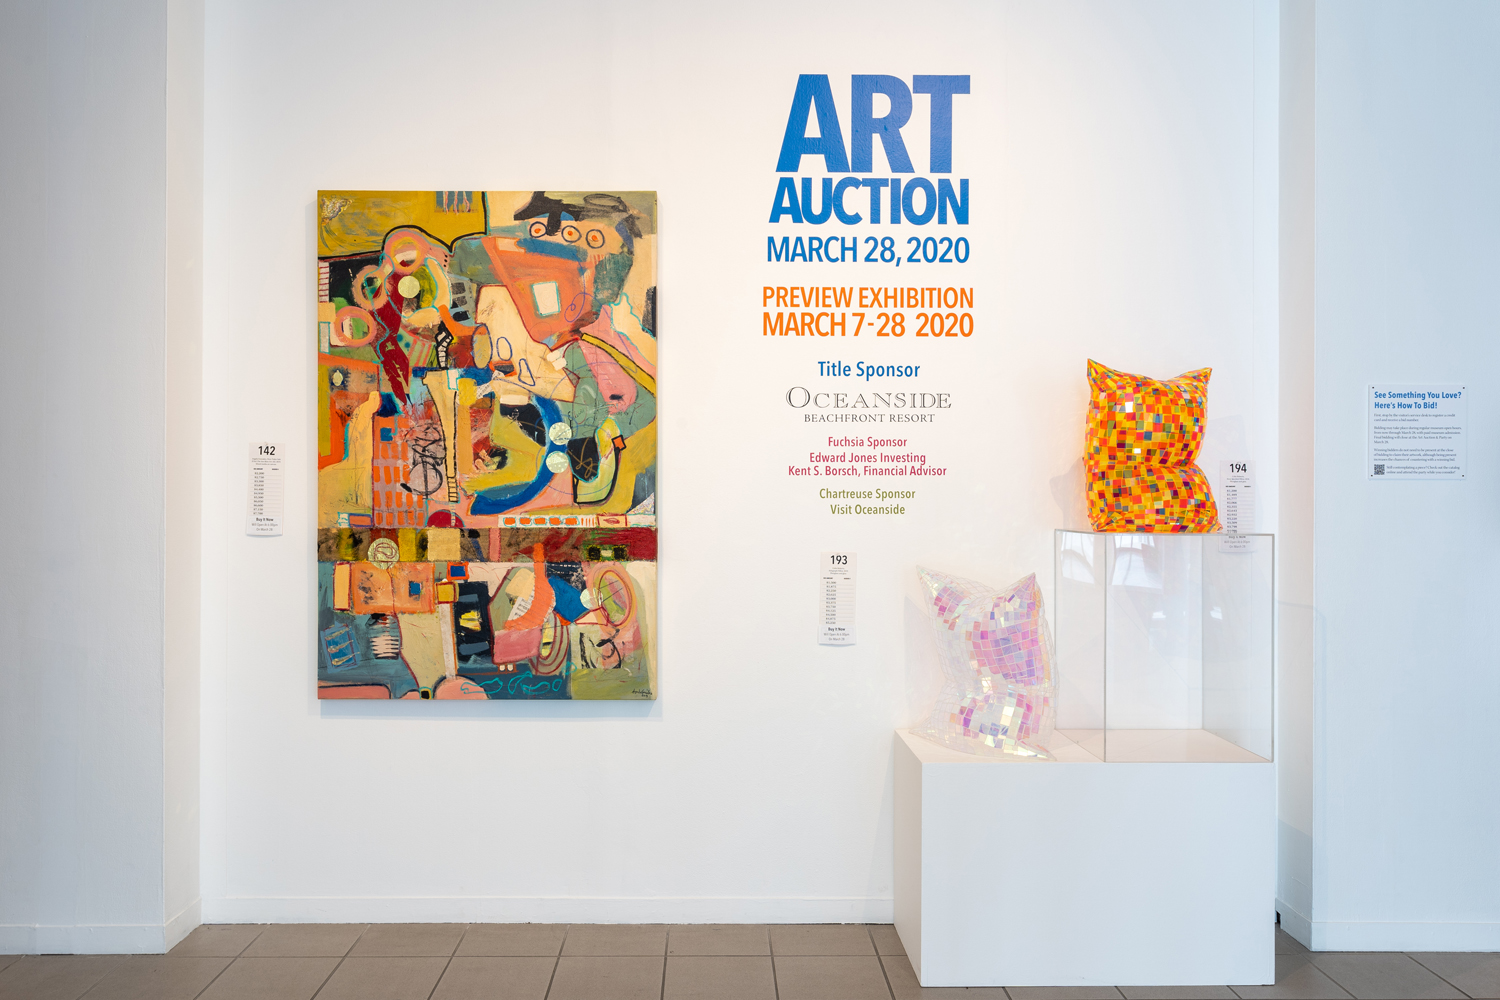 Art Auction feature wall